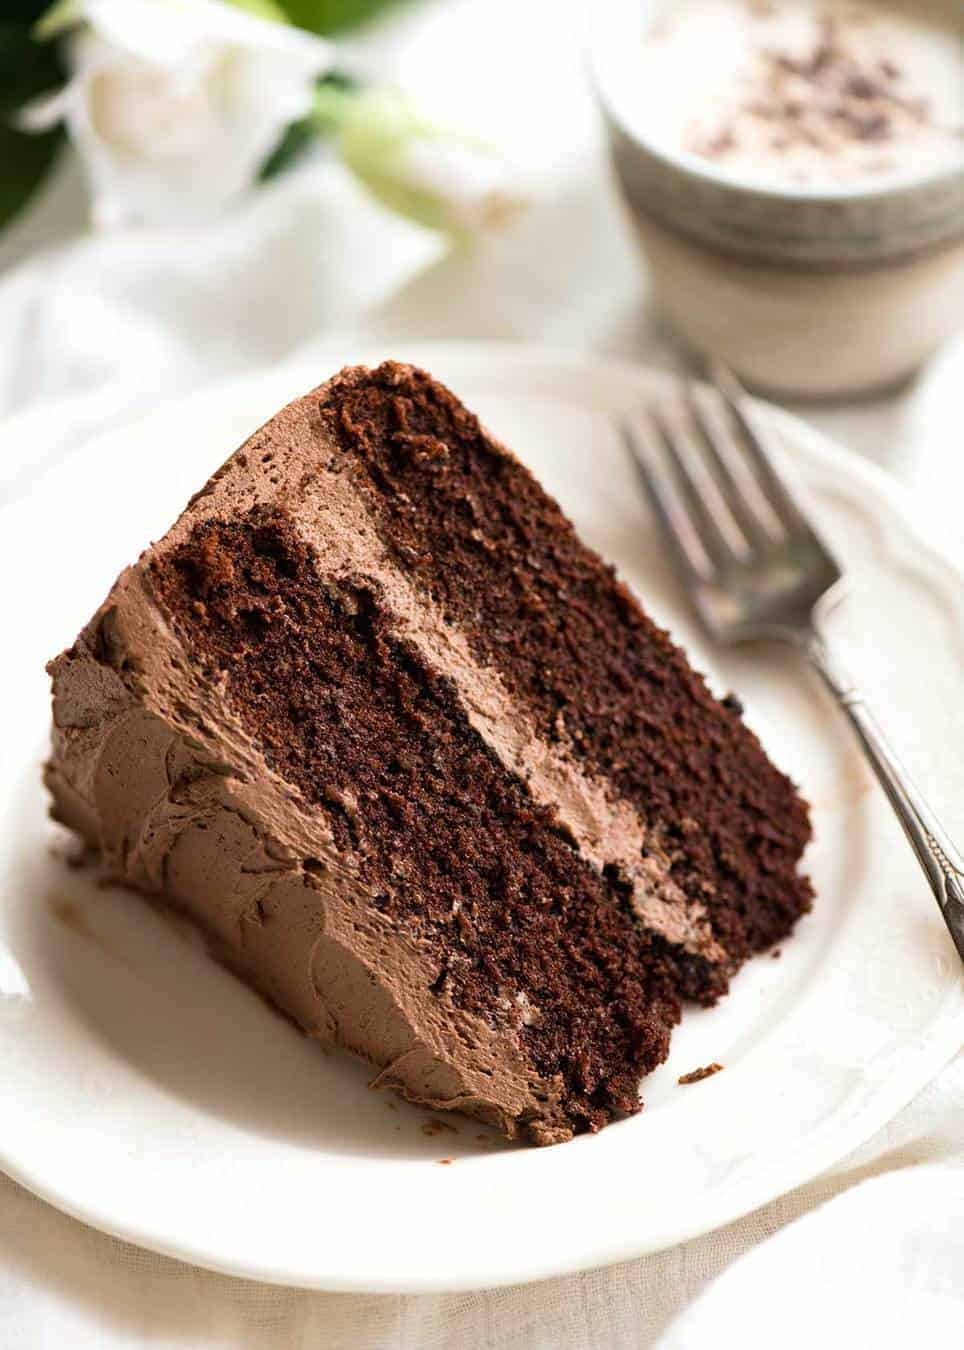 A slice of Chocolate Cake with Chocolate Buttercream Frosting on a white dessert plate with a fork, ready to be eaten.